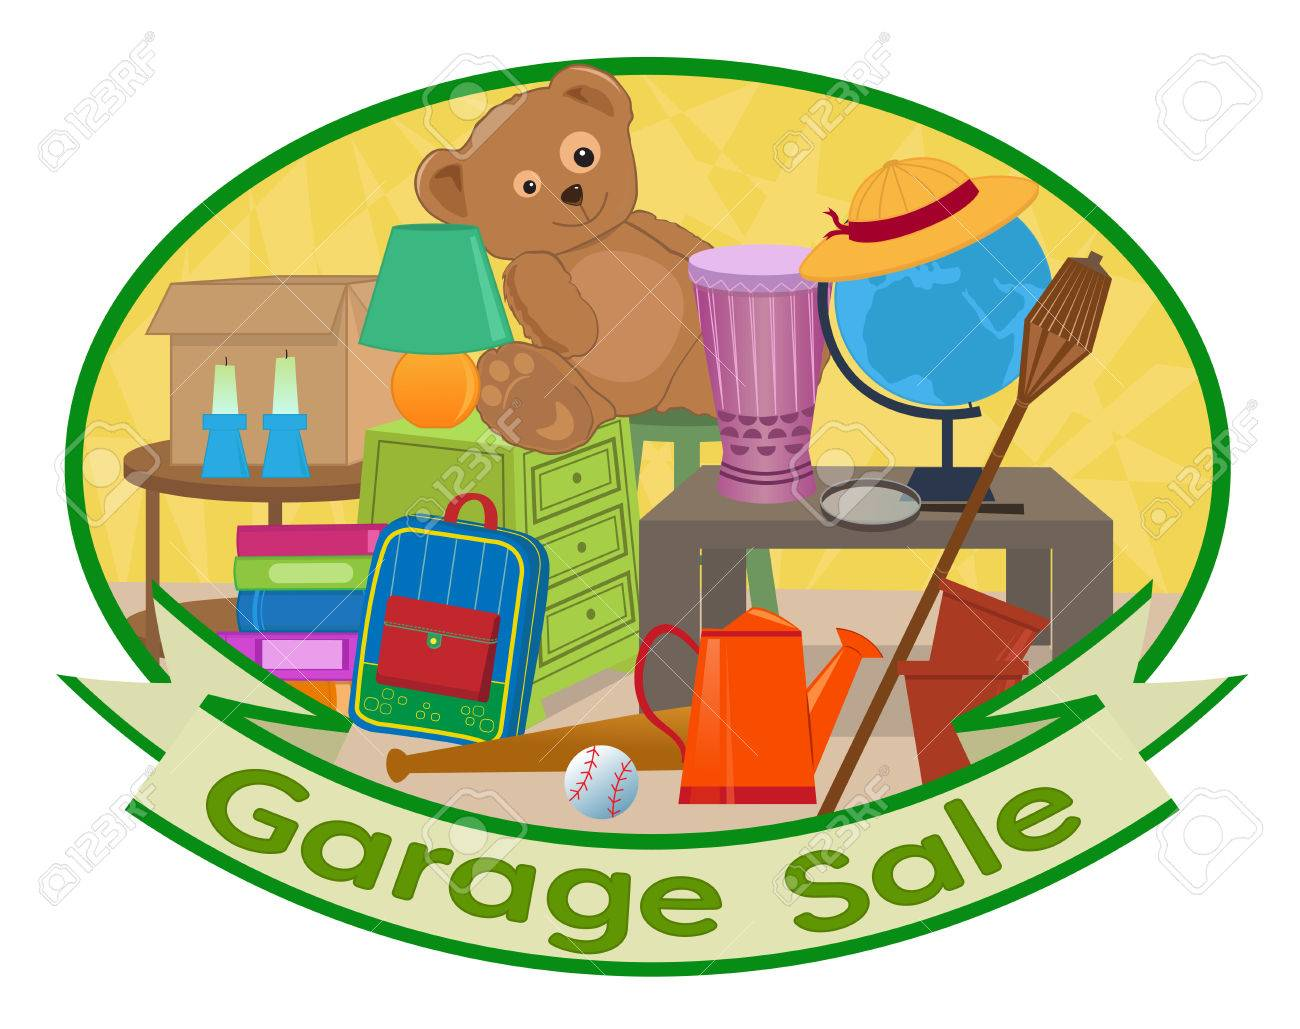 Cute clip art of different household items with garage sale text...